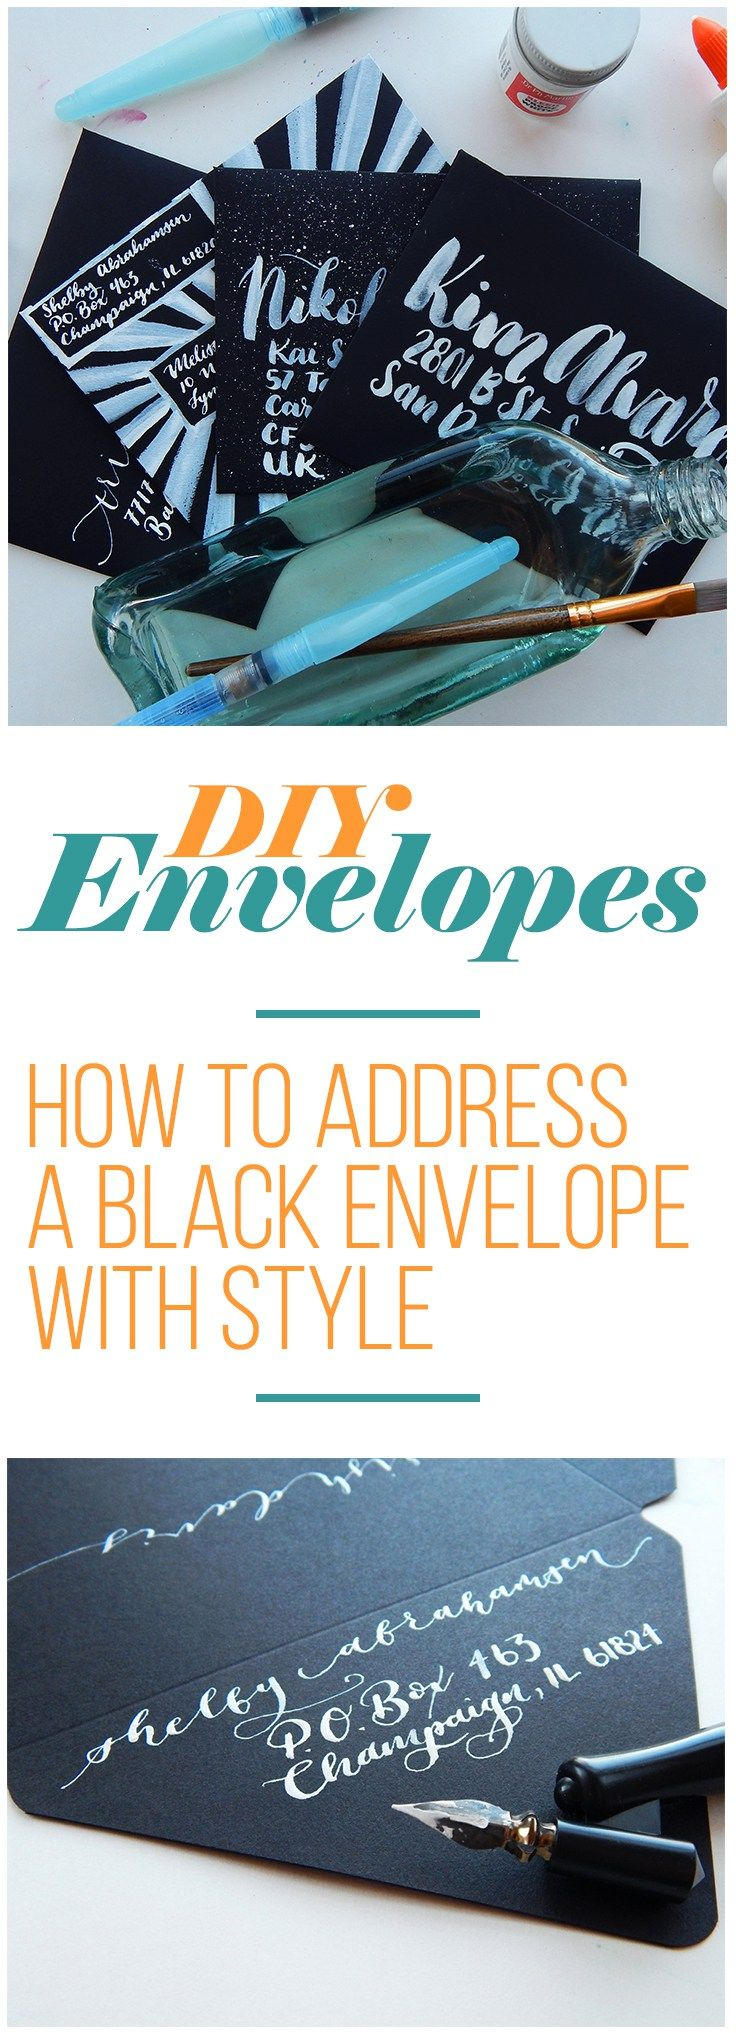 Diy Envelopes How To Address A Black